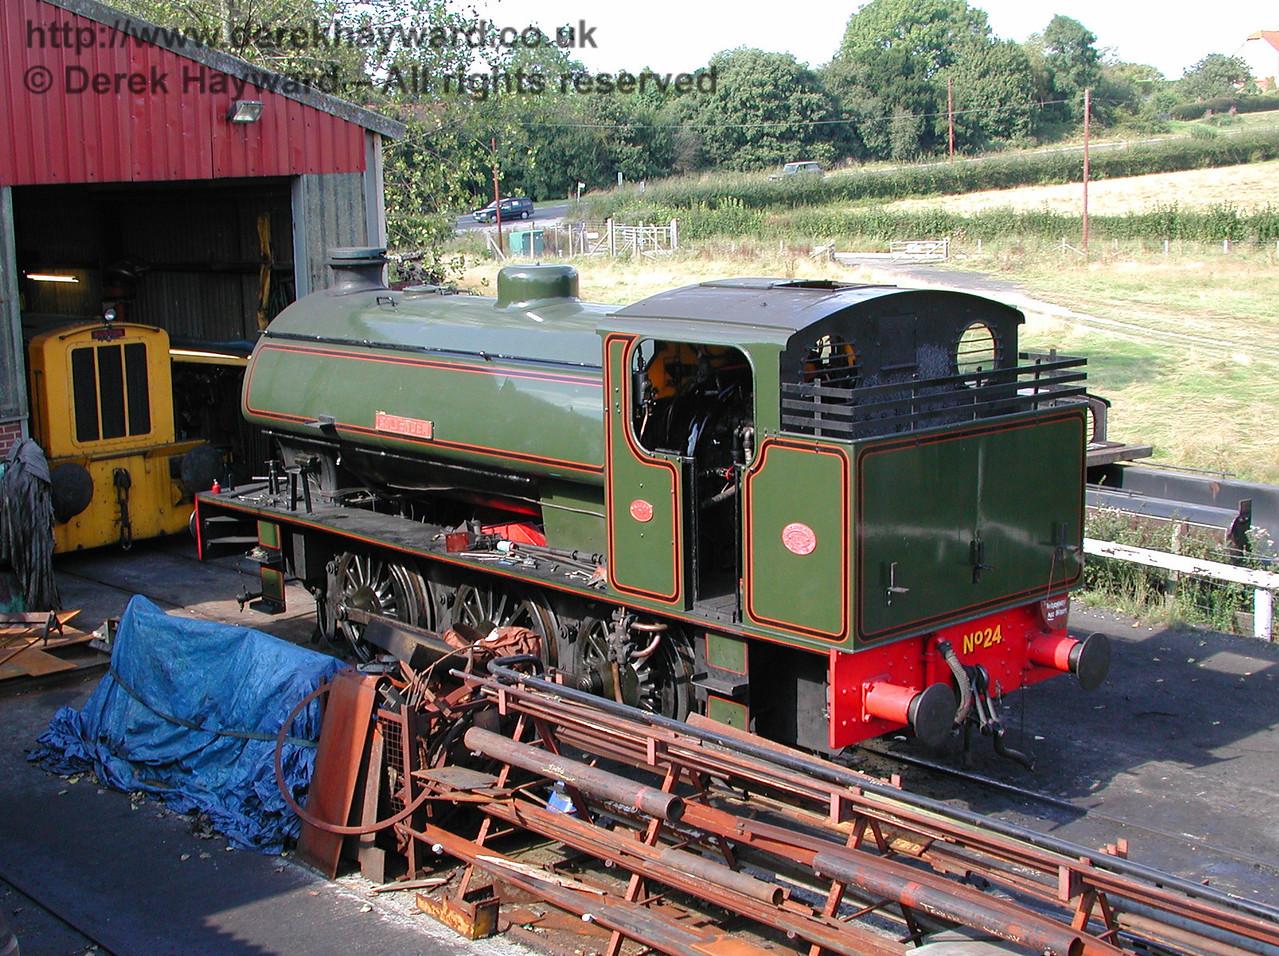 No24 Rolvenden stands outside the engine shed at Rolvenden Station. 30.08.2000